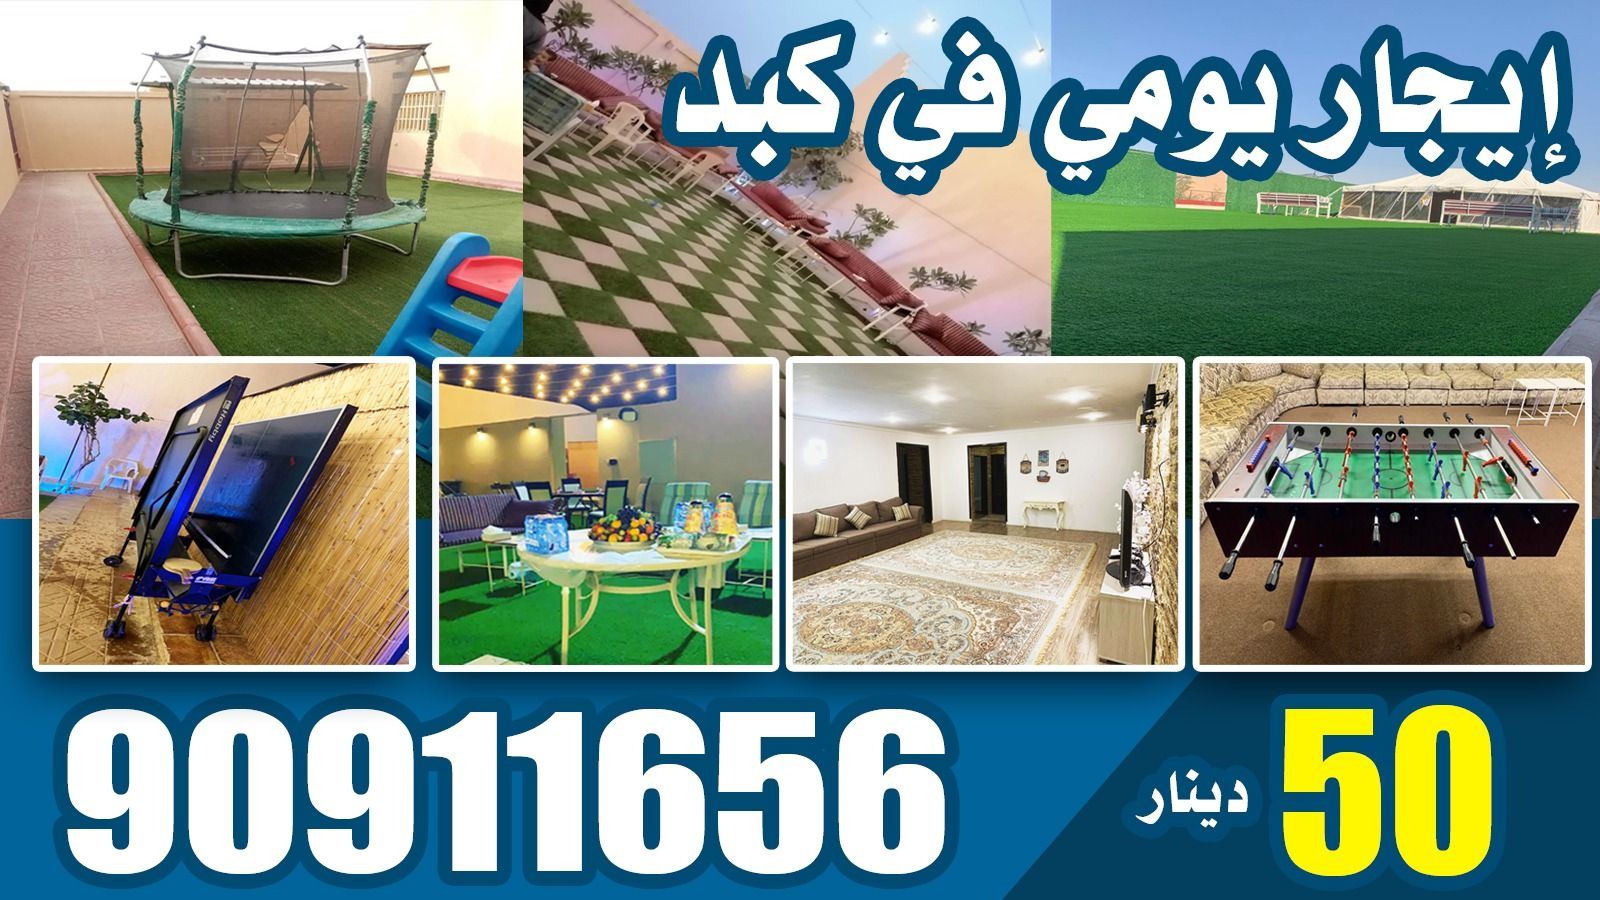 Daily rent in Kbad